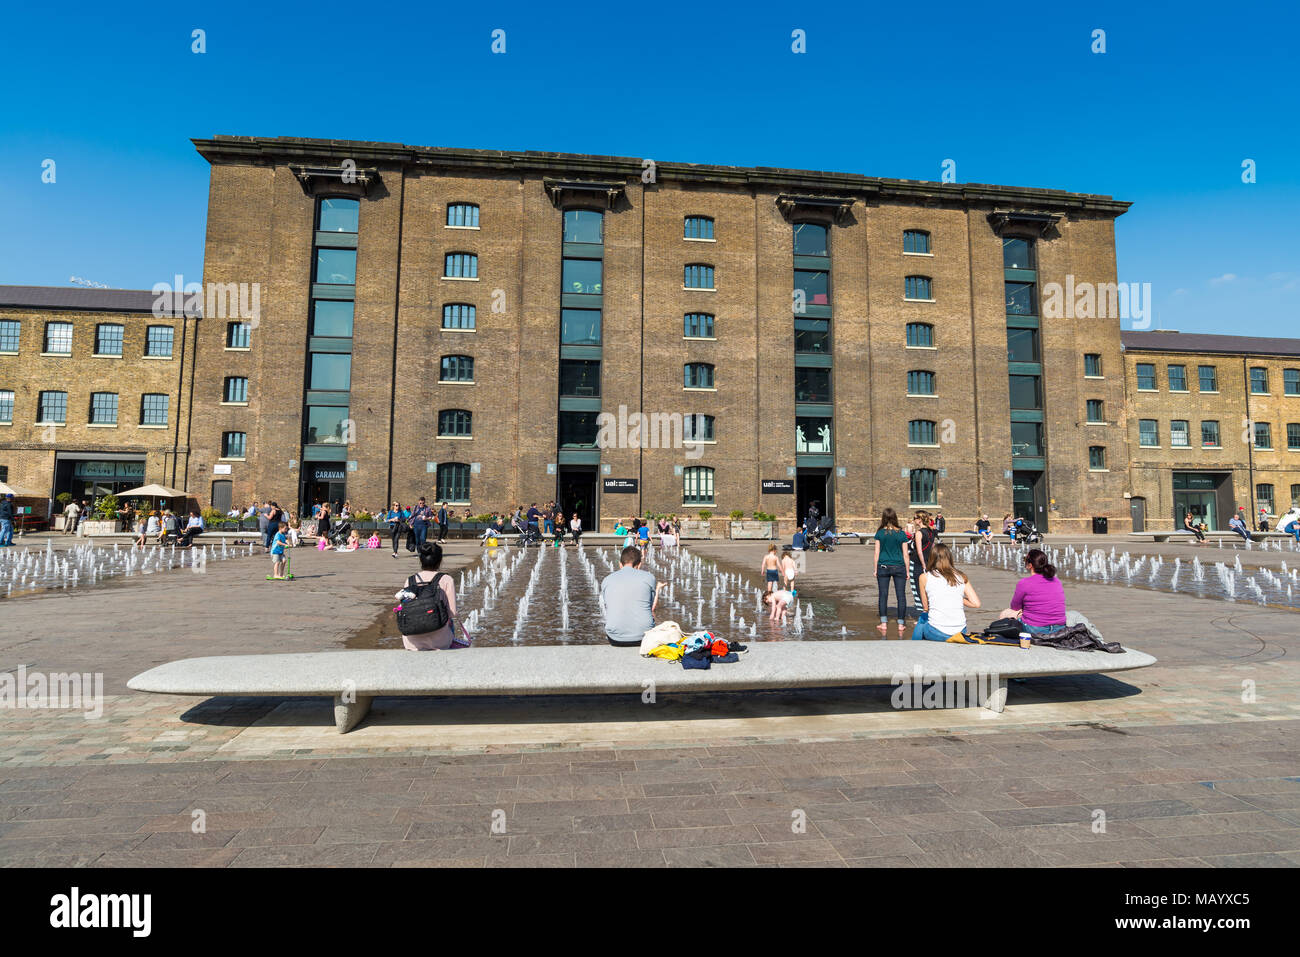 Central St Martins in Granary Square, King's Cross, London, UK - Stock Image